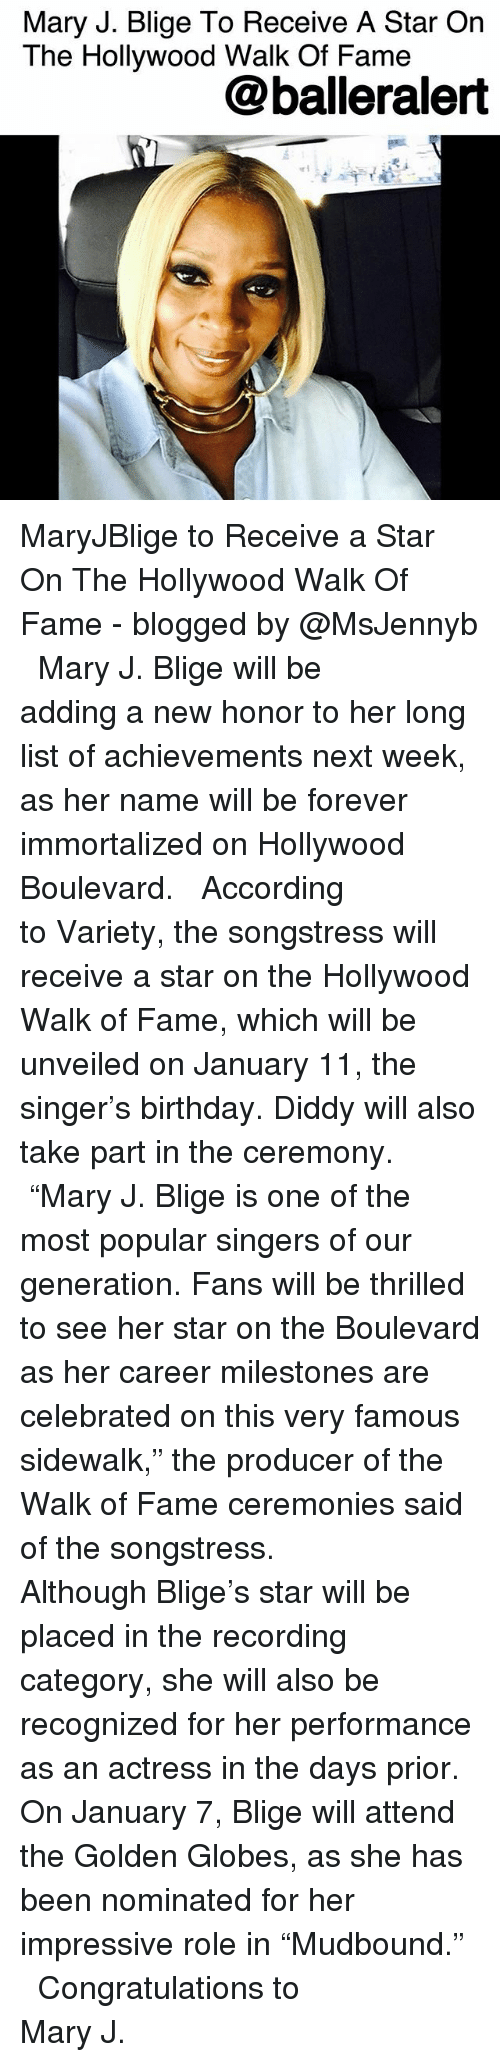 "The Walk: Mary J. Blige To Receive A Star On  The Hollywood Walk Of Famee  @balleralert MaryJBlige to Receive a Star On The Hollywood Walk Of Fame - blogged by @MsJennyb ⠀⠀⠀⠀⠀⠀⠀ ⠀⠀⠀⠀⠀⠀⠀ Mary J. Blige will be adding a new honor to her long list of achievements next week, as her name will be forever immortalized on Hollywood Boulevard. ⠀⠀⠀⠀⠀⠀⠀ ⠀⠀⠀⠀⠀⠀⠀ According to Variety, the songstress will receive a star on the Hollywood Walk of Fame, which will be unveiled on January 11, the singer's birthday. Diddy will also take part in the ceremony. ⠀⠀⠀⠀⠀⠀⠀ ⠀⠀⠀⠀⠀⠀⠀ ""Mary J. Blige is one of the most popular singers of our generation. Fans will be thrilled to see her star on the Boulevard as her career milestones are celebrated on this very famous sidewalk,"" the producer of the Walk of Fame ceremonies said of the songstress. ⠀⠀⠀⠀⠀⠀⠀ ⠀⠀⠀⠀⠀⠀⠀ Although Blige's star will be placed in the recording category, she will also be recognized for her performance as an actress in the days prior. On January 7, Blige will attend the Golden Globes, as she has been nominated for her impressive role in ""Mudbound."" ⠀⠀⠀⠀⠀⠀⠀ ⠀⠀⠀⠀⠀⠀⠀ Congratulations to Mary J."